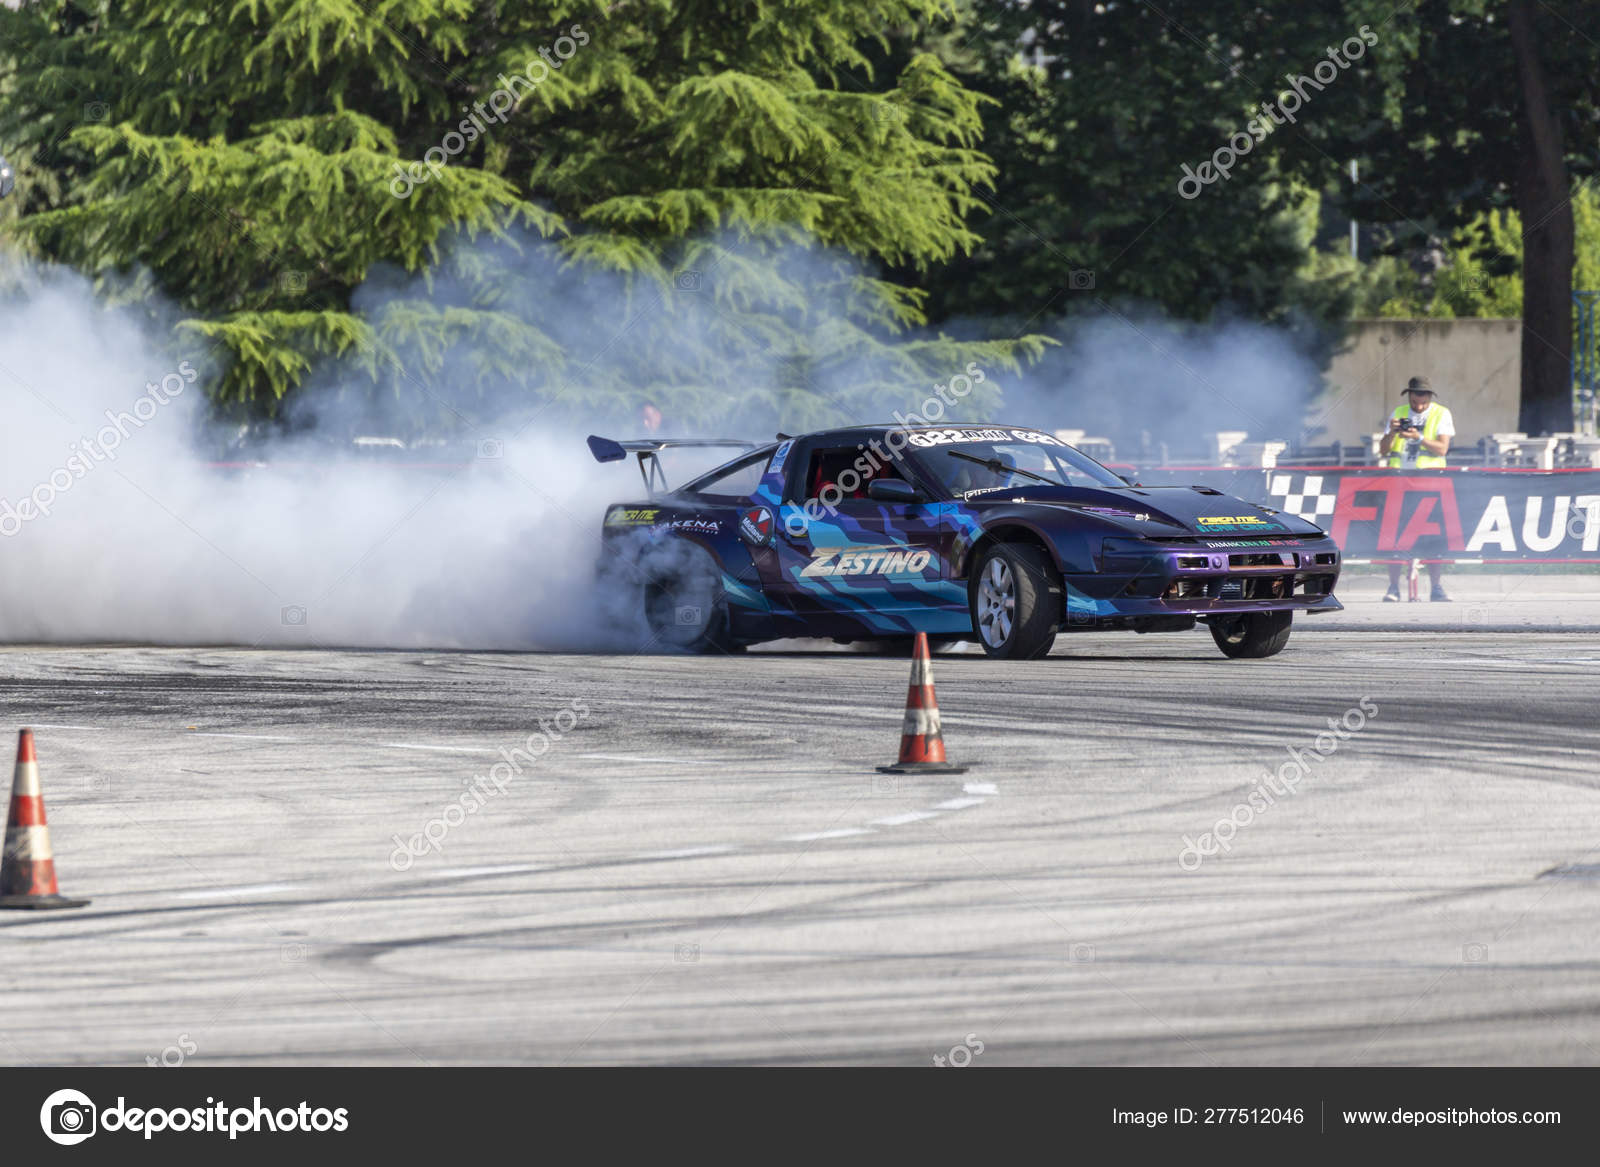 Car drifting race competition on a track – Stock Editorial